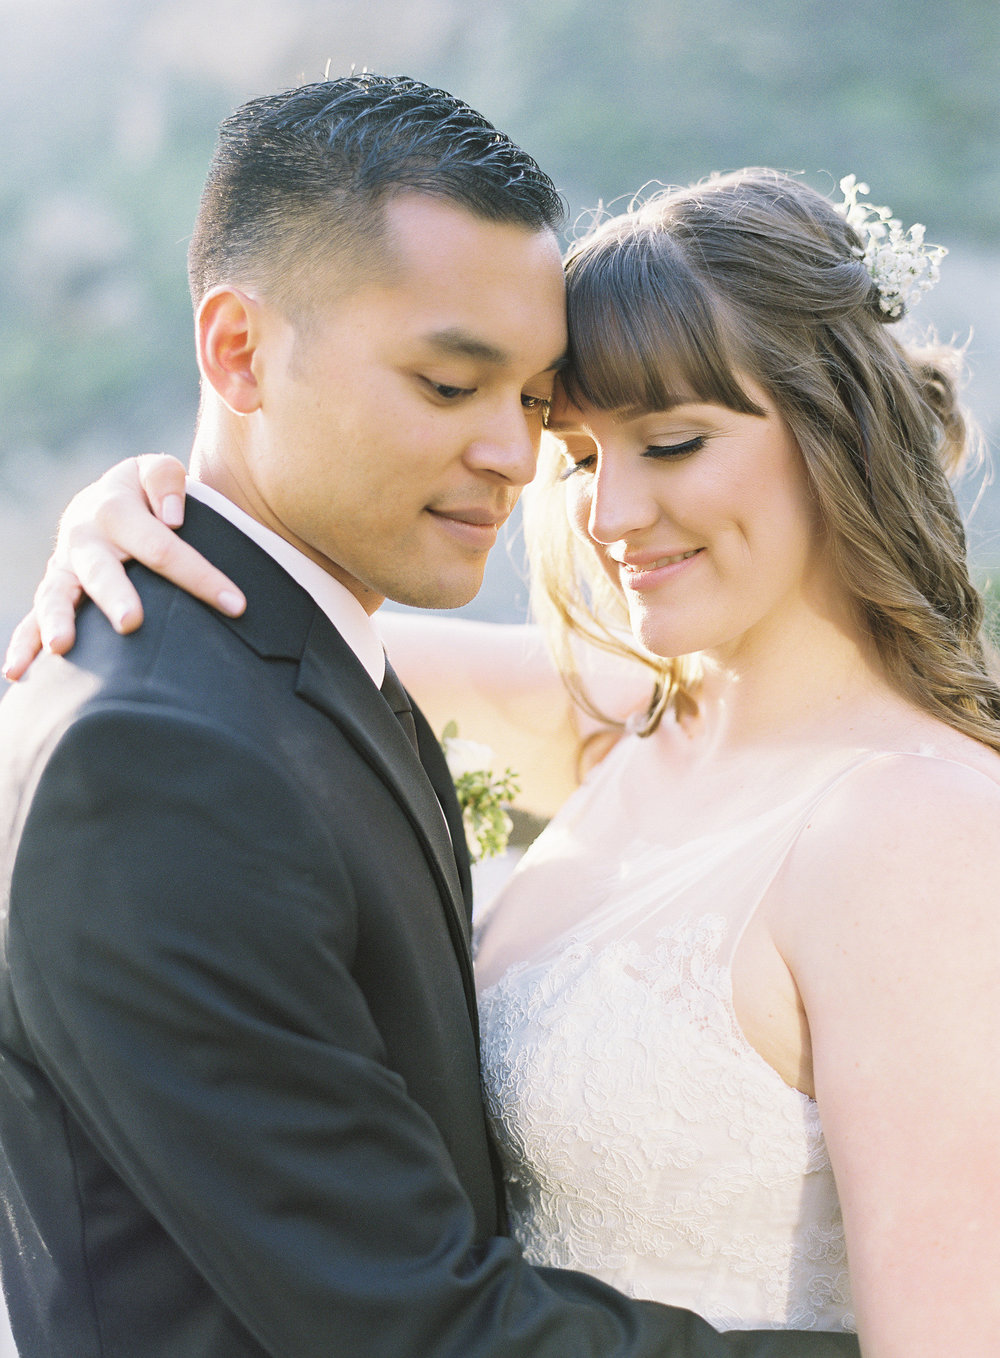 Brunette Bride with Bangs and Hair Down Hugging Husband outdoors. Wedding Hair and Makeup by Vanity Belle in Orange County (Costa Mesa) and San Diego (La Jolla)